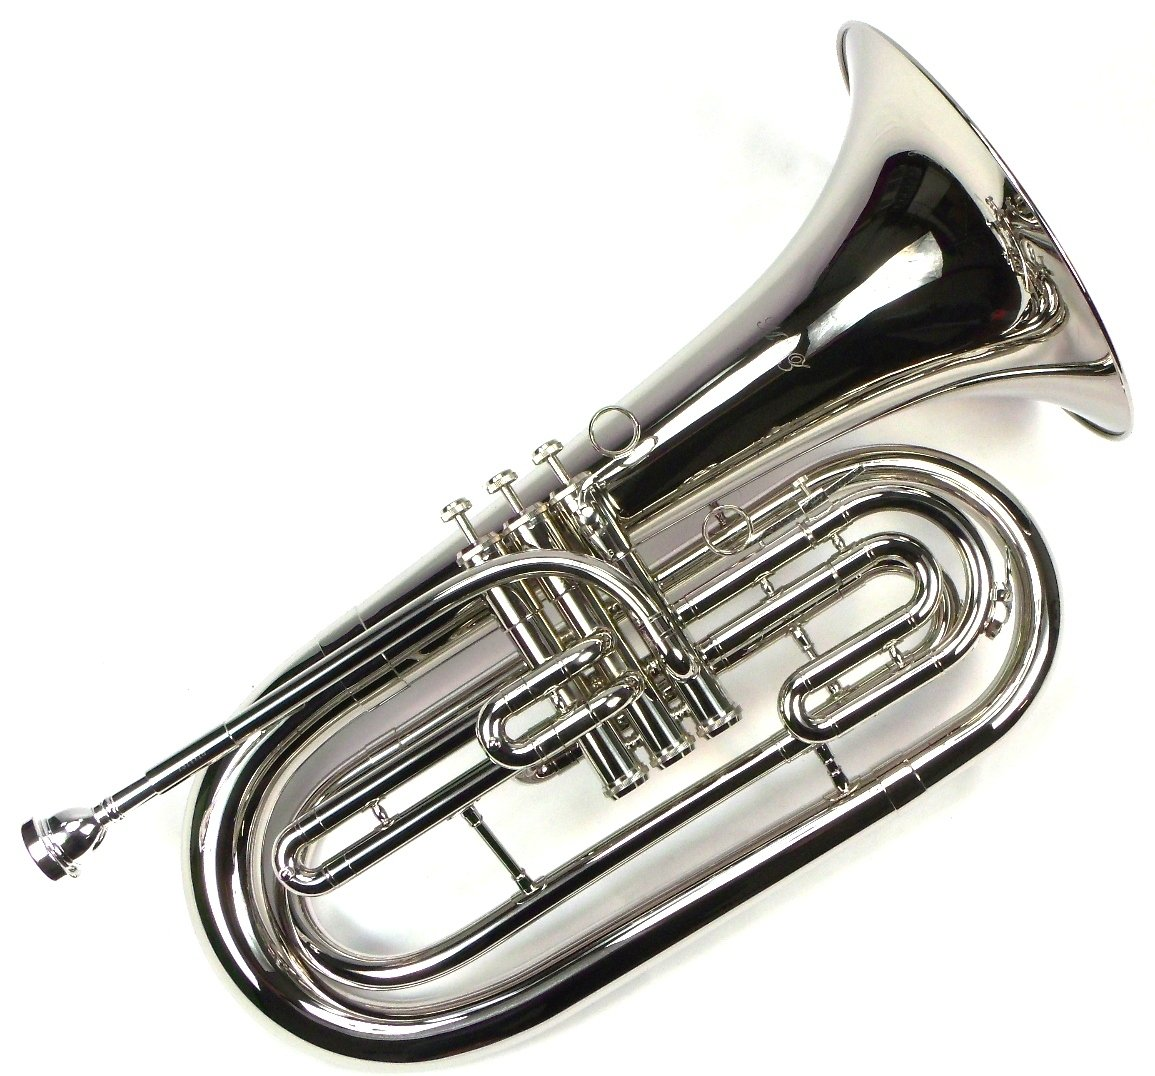 Advanced Monel Pistons Marching Baritone Key of Bb w/ Case & Mouthpiece-Nickel Plated Finish by Moz